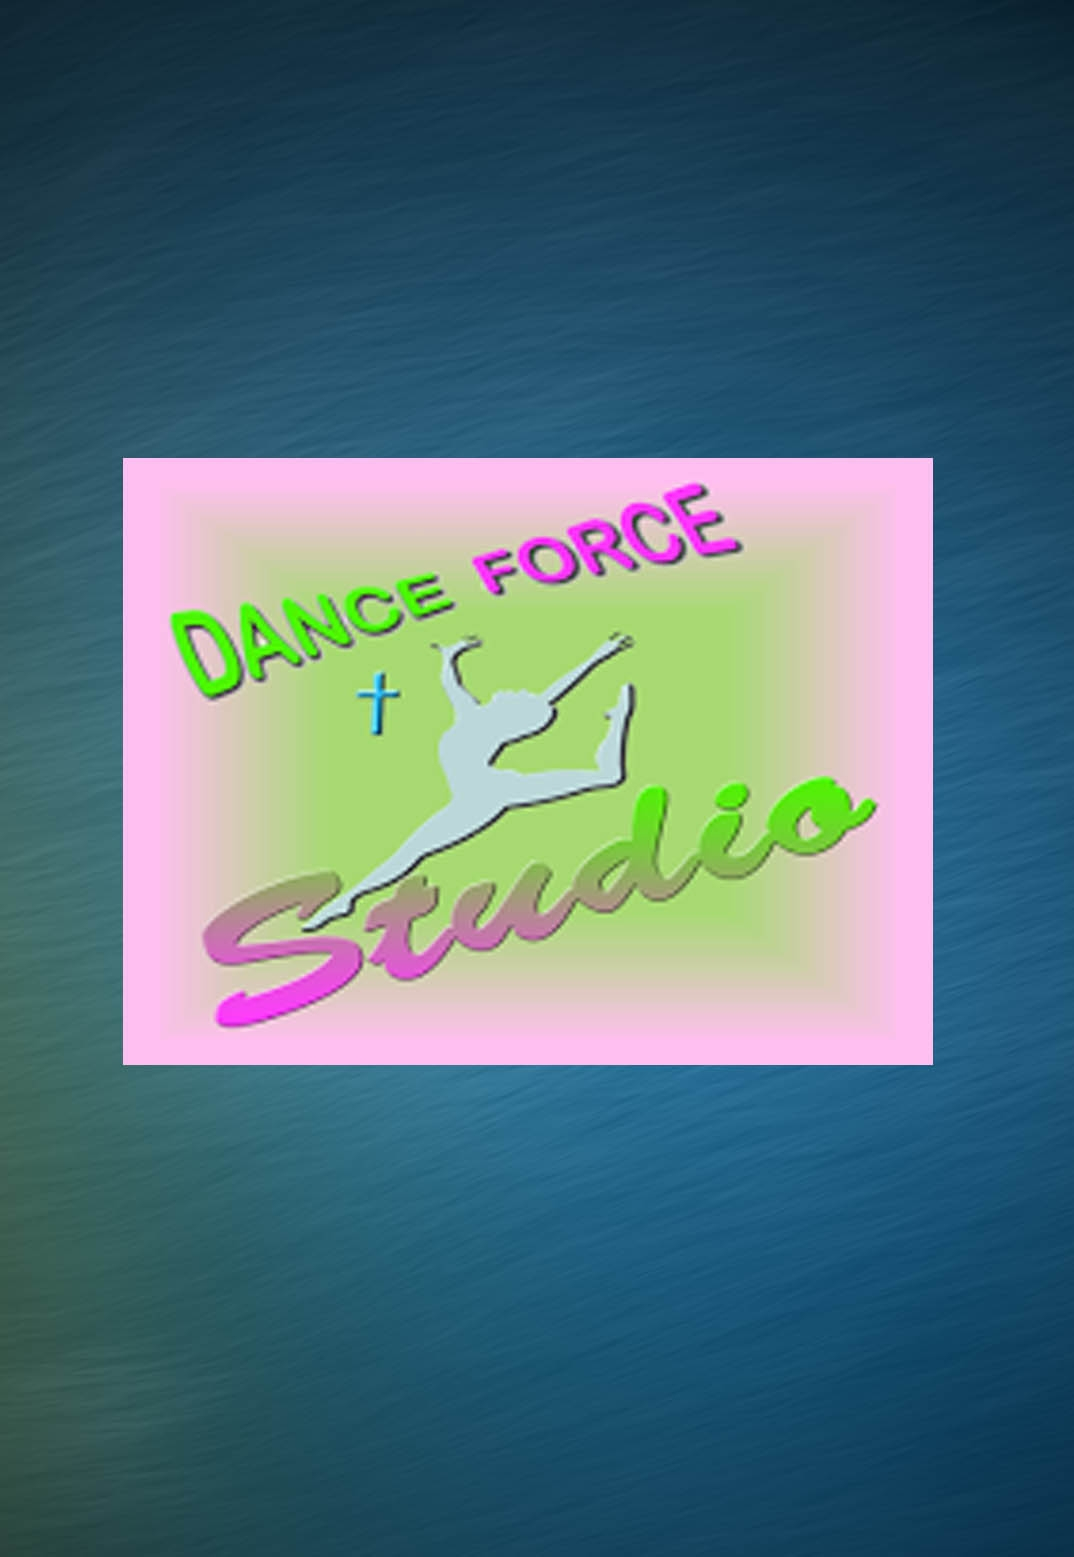 Dance Force Studio 2015 – Both Shows